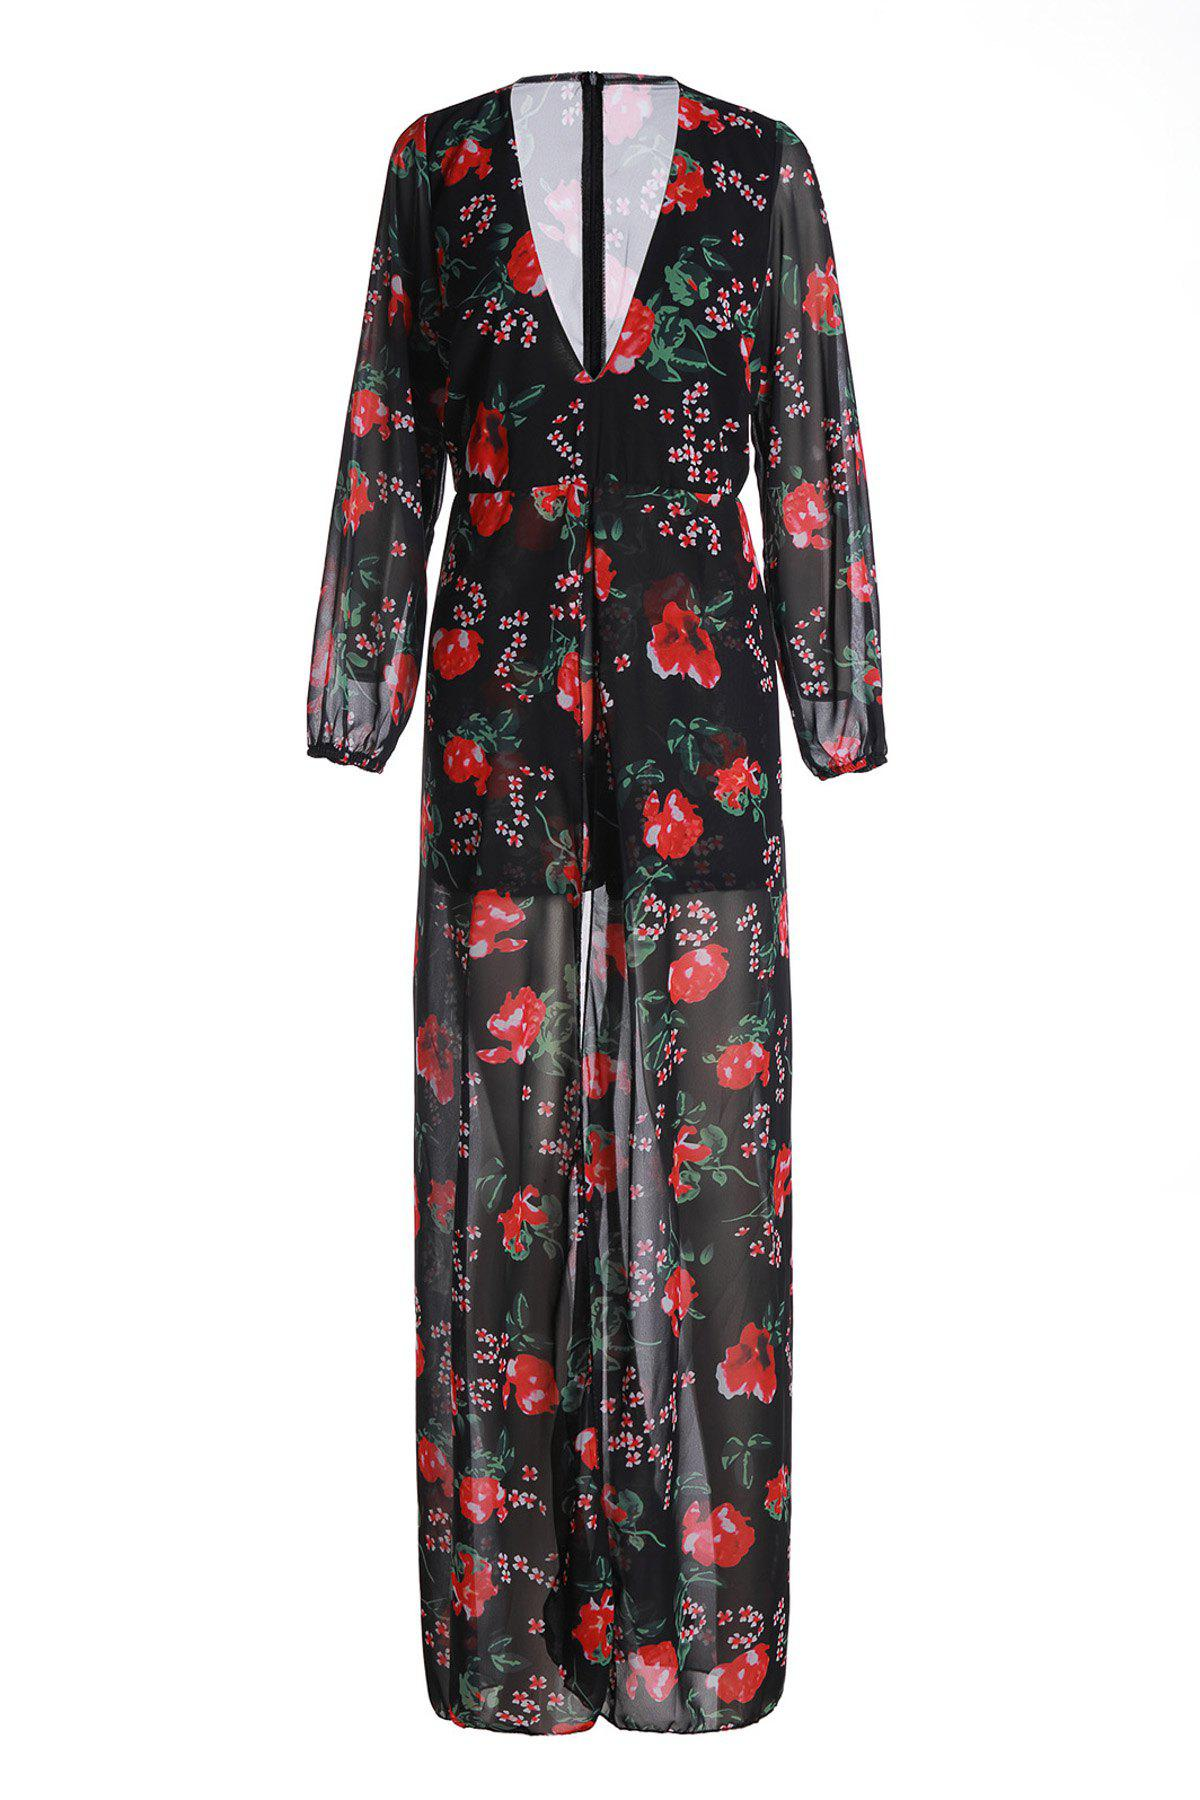 Outfits Charming Plunging Neck Floral Printed High Low Romper For Women